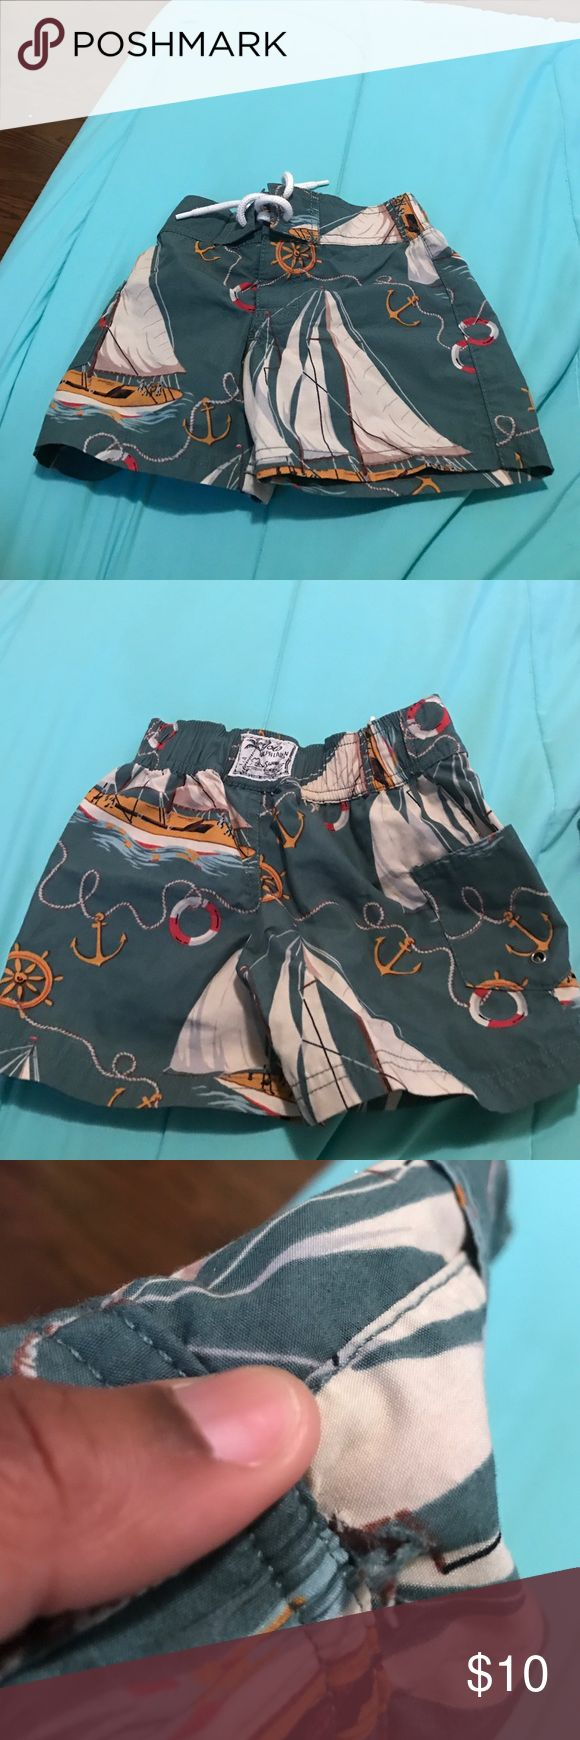 Polo Ralph Lauren swim shorts They worn one time have a little hole shown in picture you can't really see it #moving sale so I'm working out prices Polo by Ralph Lauren Swim Swim Trunks